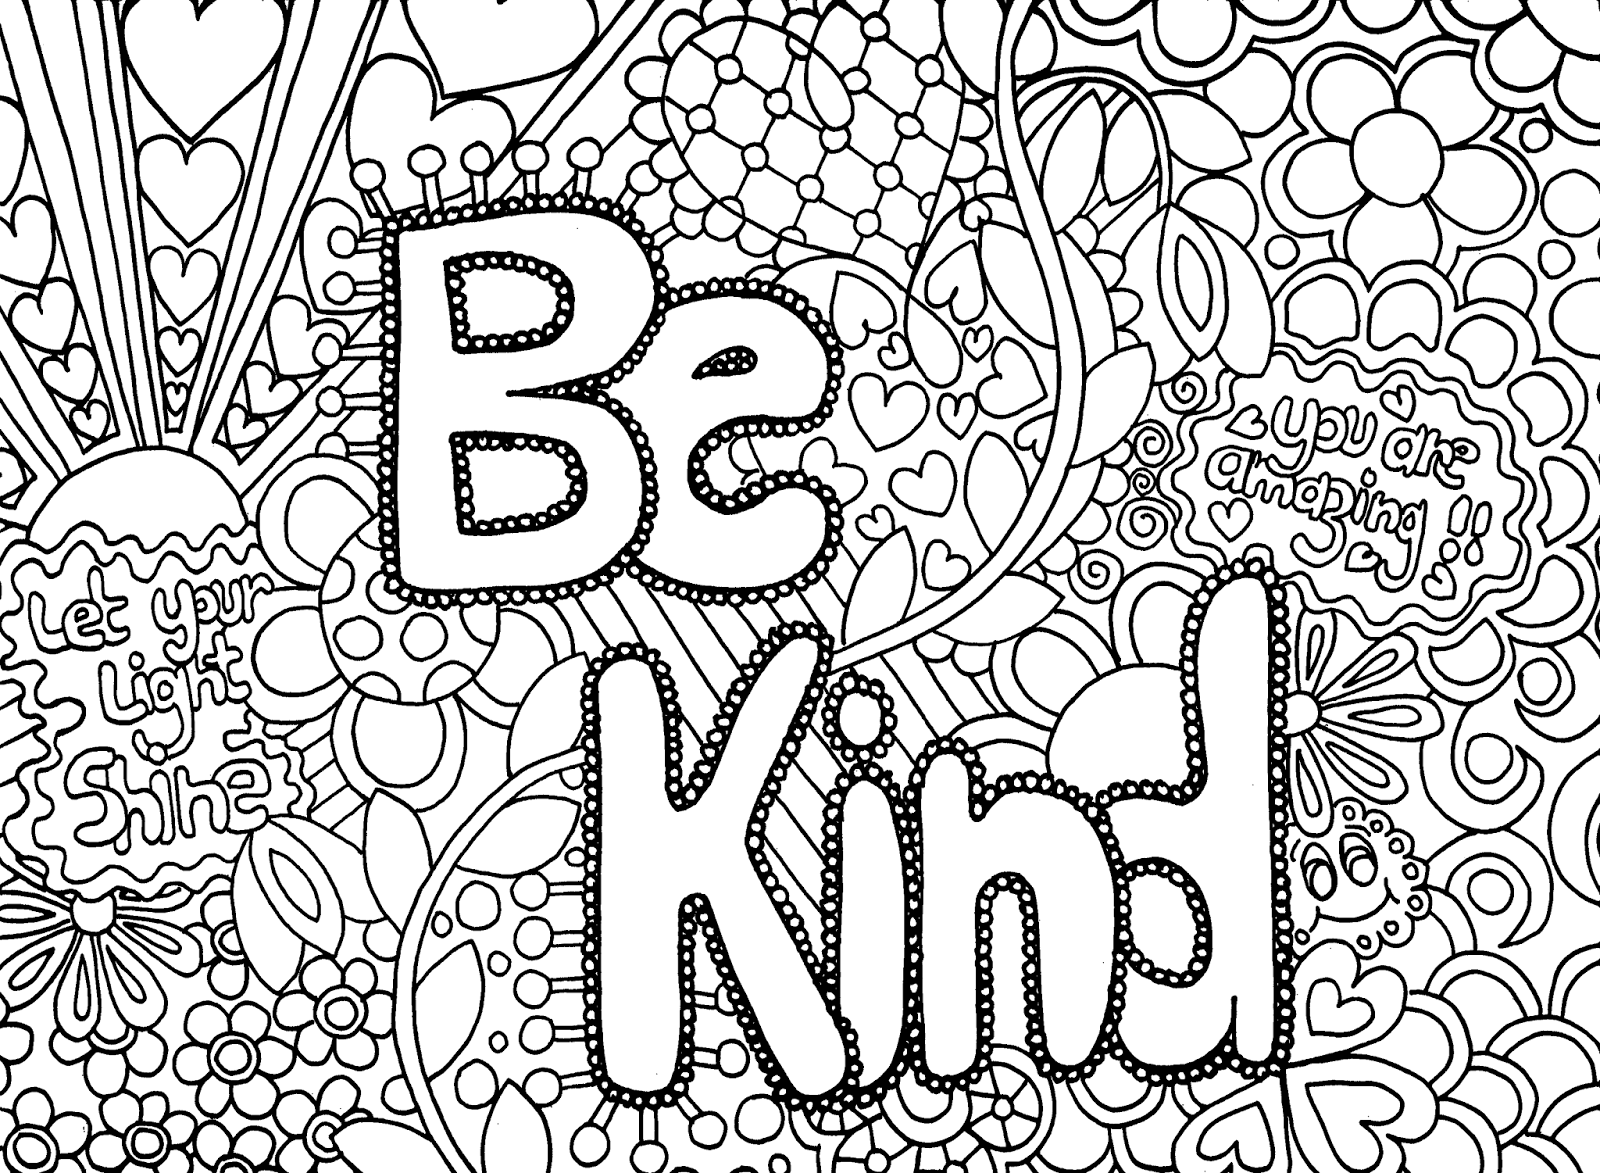 hard coloring pages printable free - difficult hard coloring pages printable only coloring